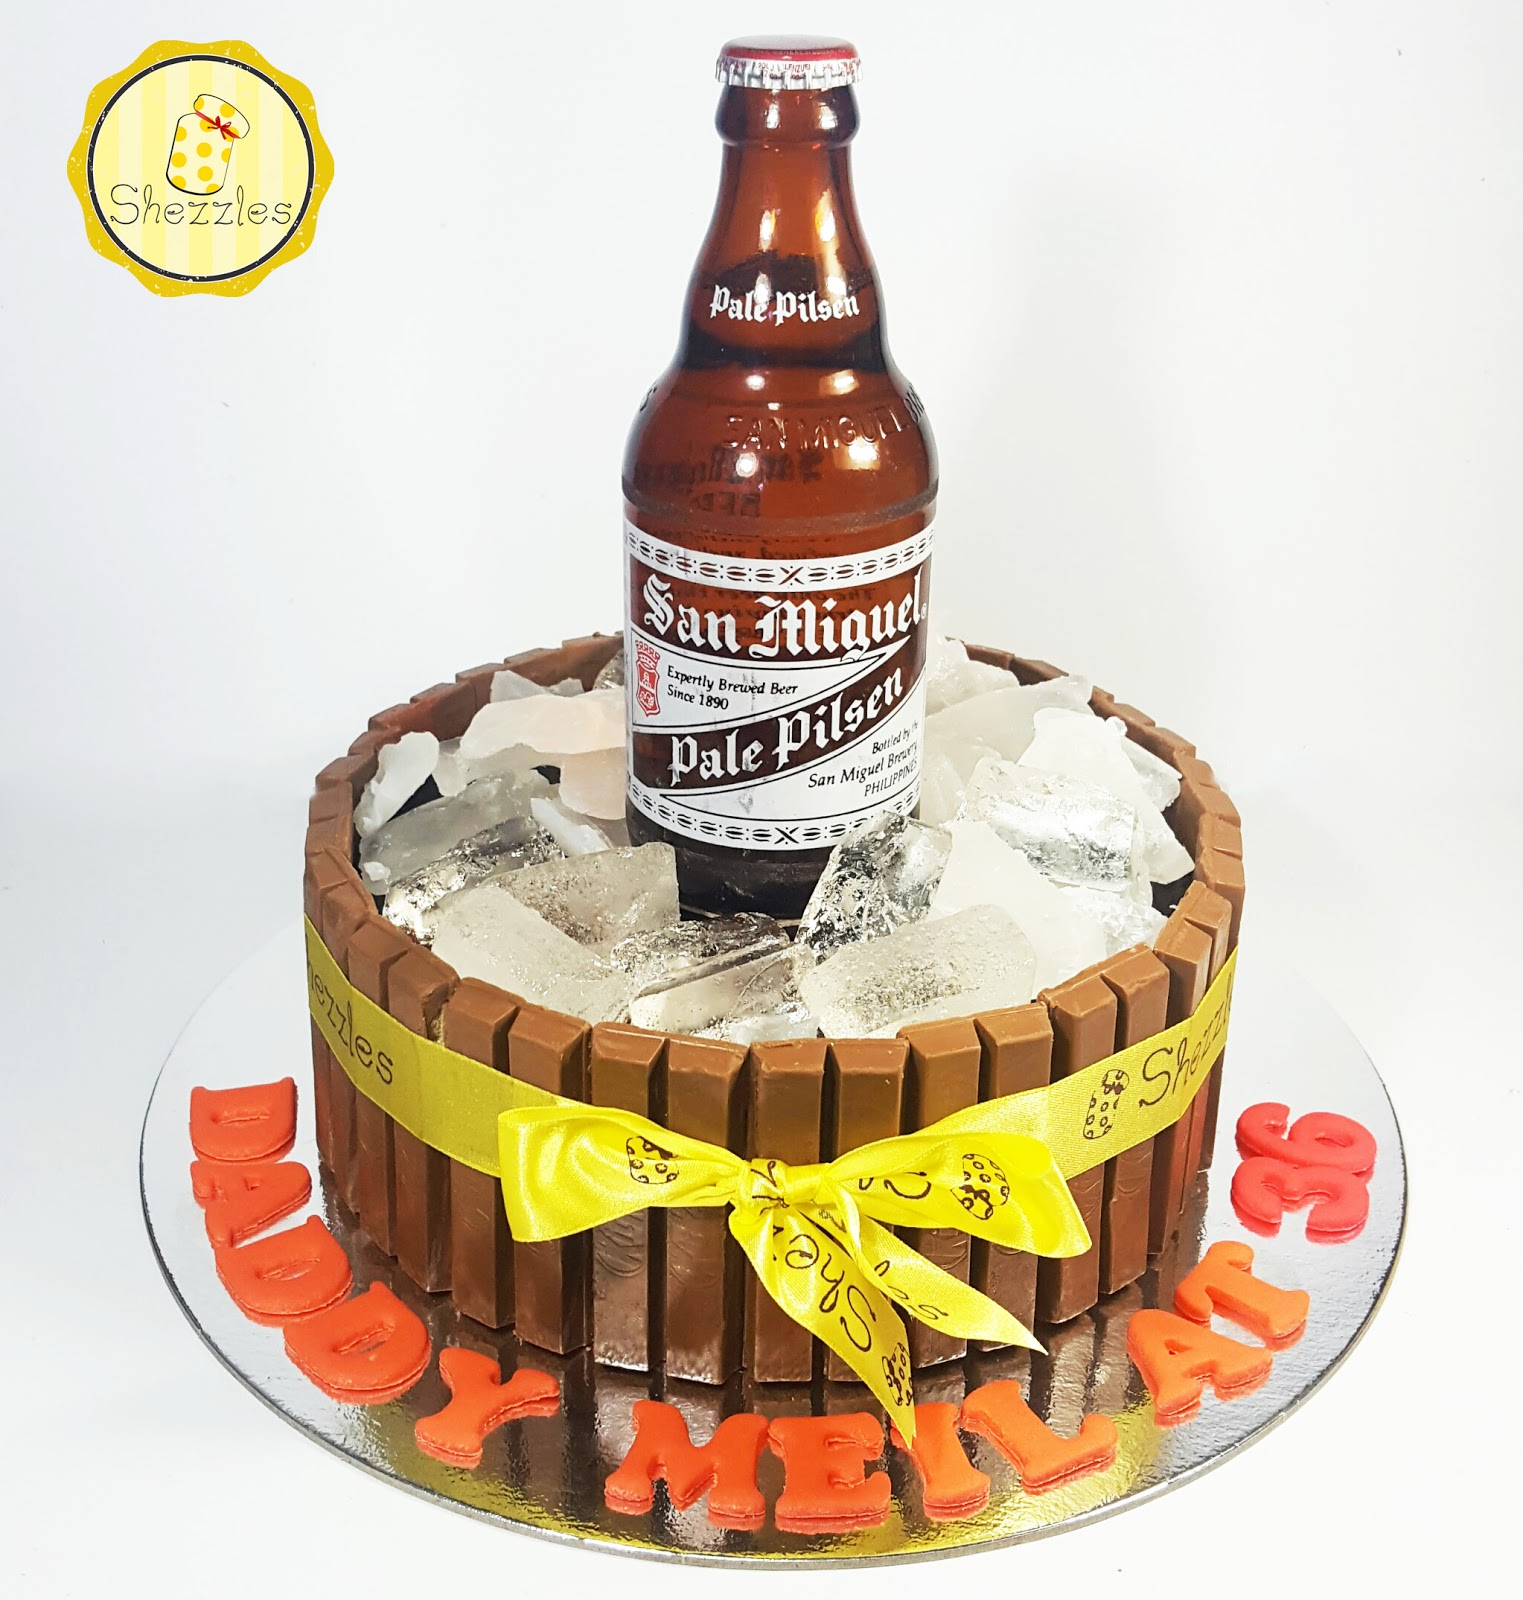 Stupendous Shezzles Cakes And Pastries Kit Kat Beer Cake Funny Birthday Cards Online Elaedamsfinfo